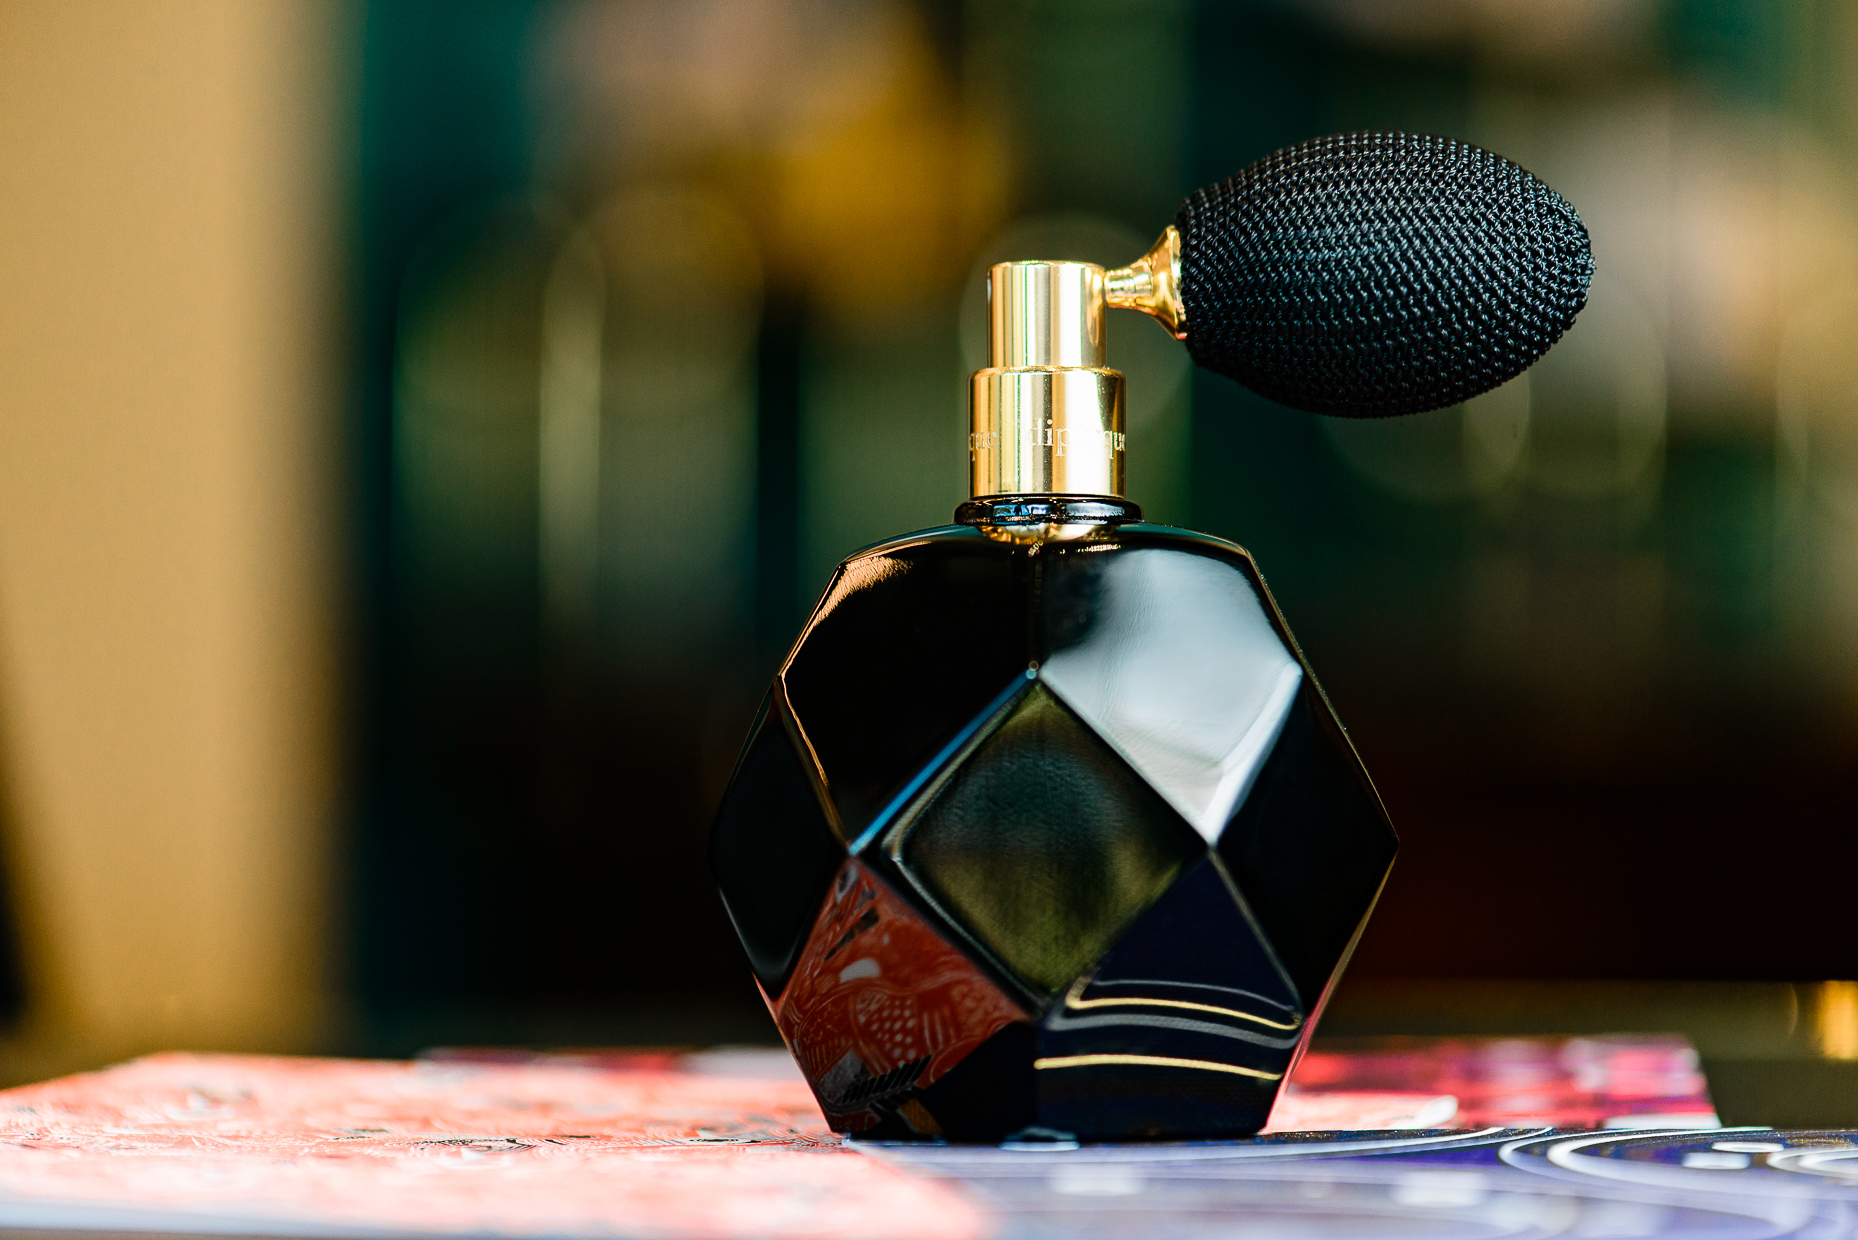 Commercial-Product-Photographer-Austin-Texas-Diptyque-Perfume-Bottle-Octadecagon